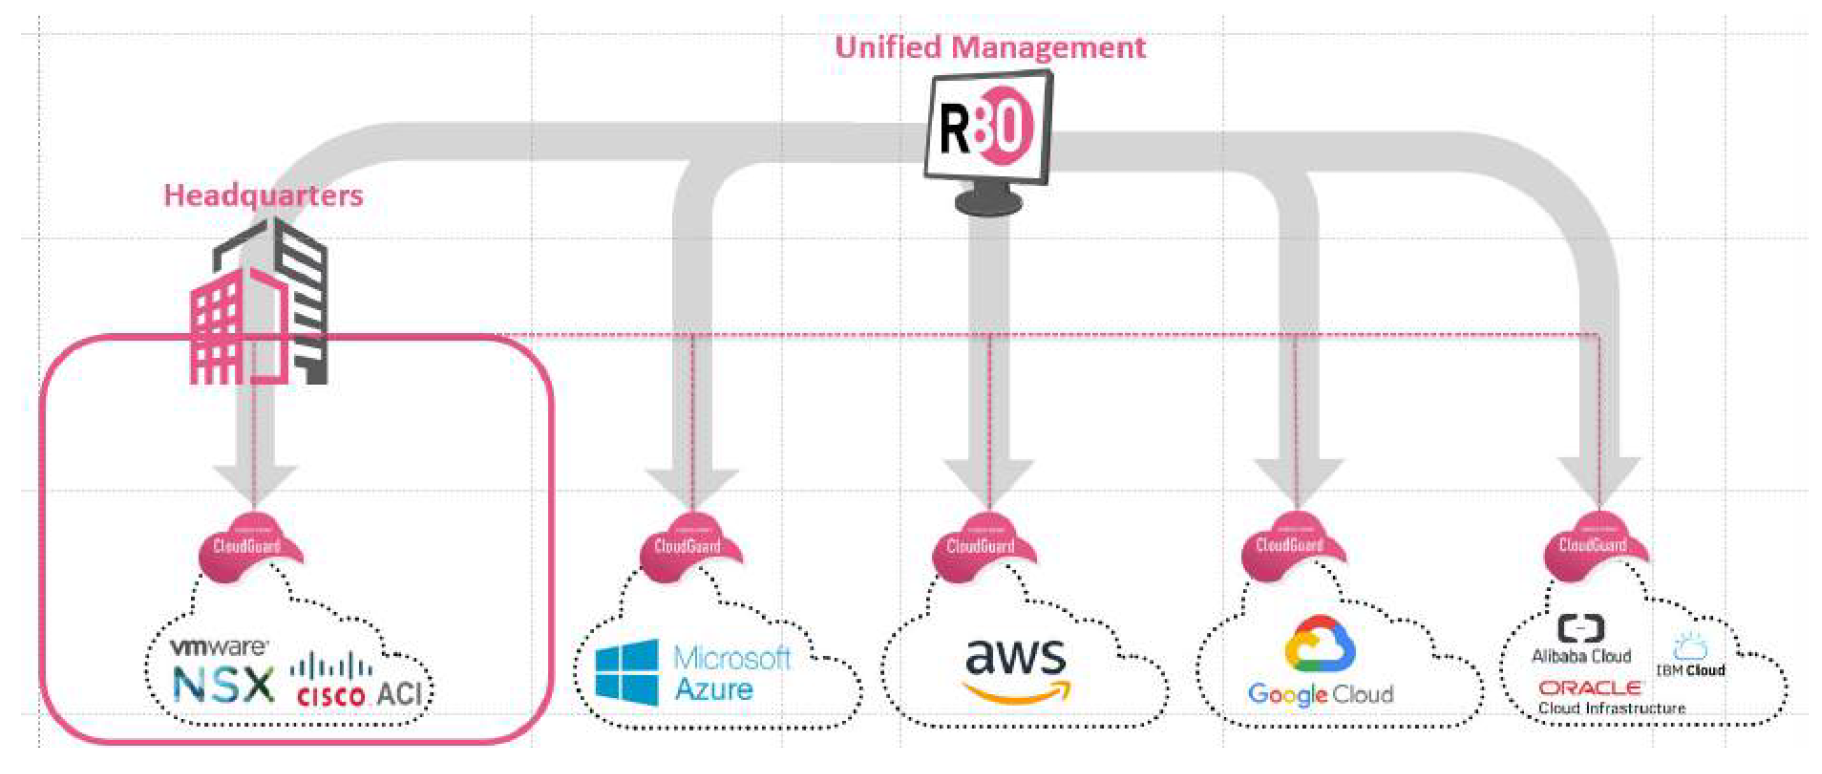 Figure 7: Check Point R80 Security Management Ser ver for Unified Management